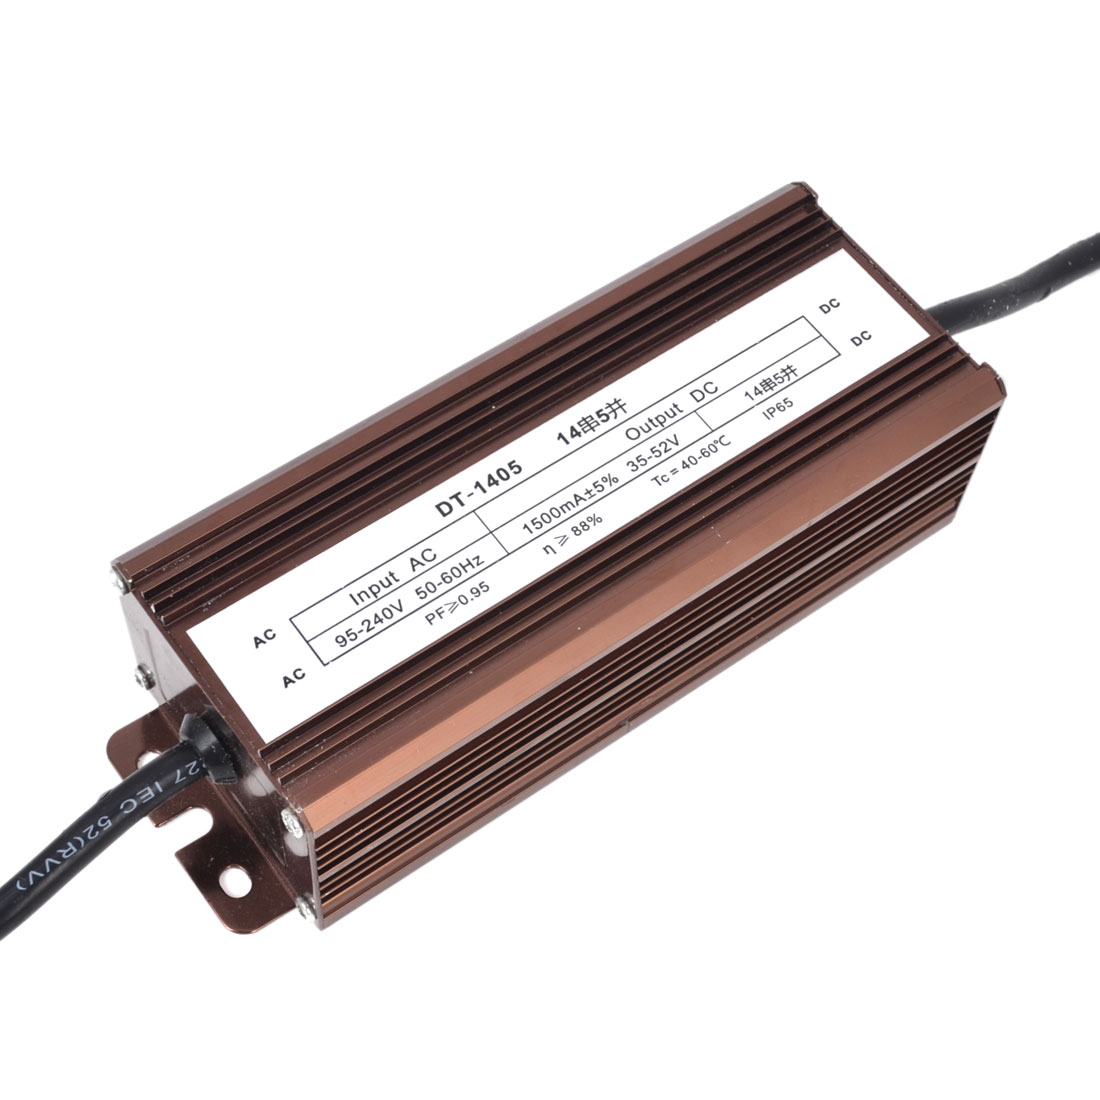 AC 95-240V to DC 35-52V Waterproof LED Driver Transformer Adapter 70W